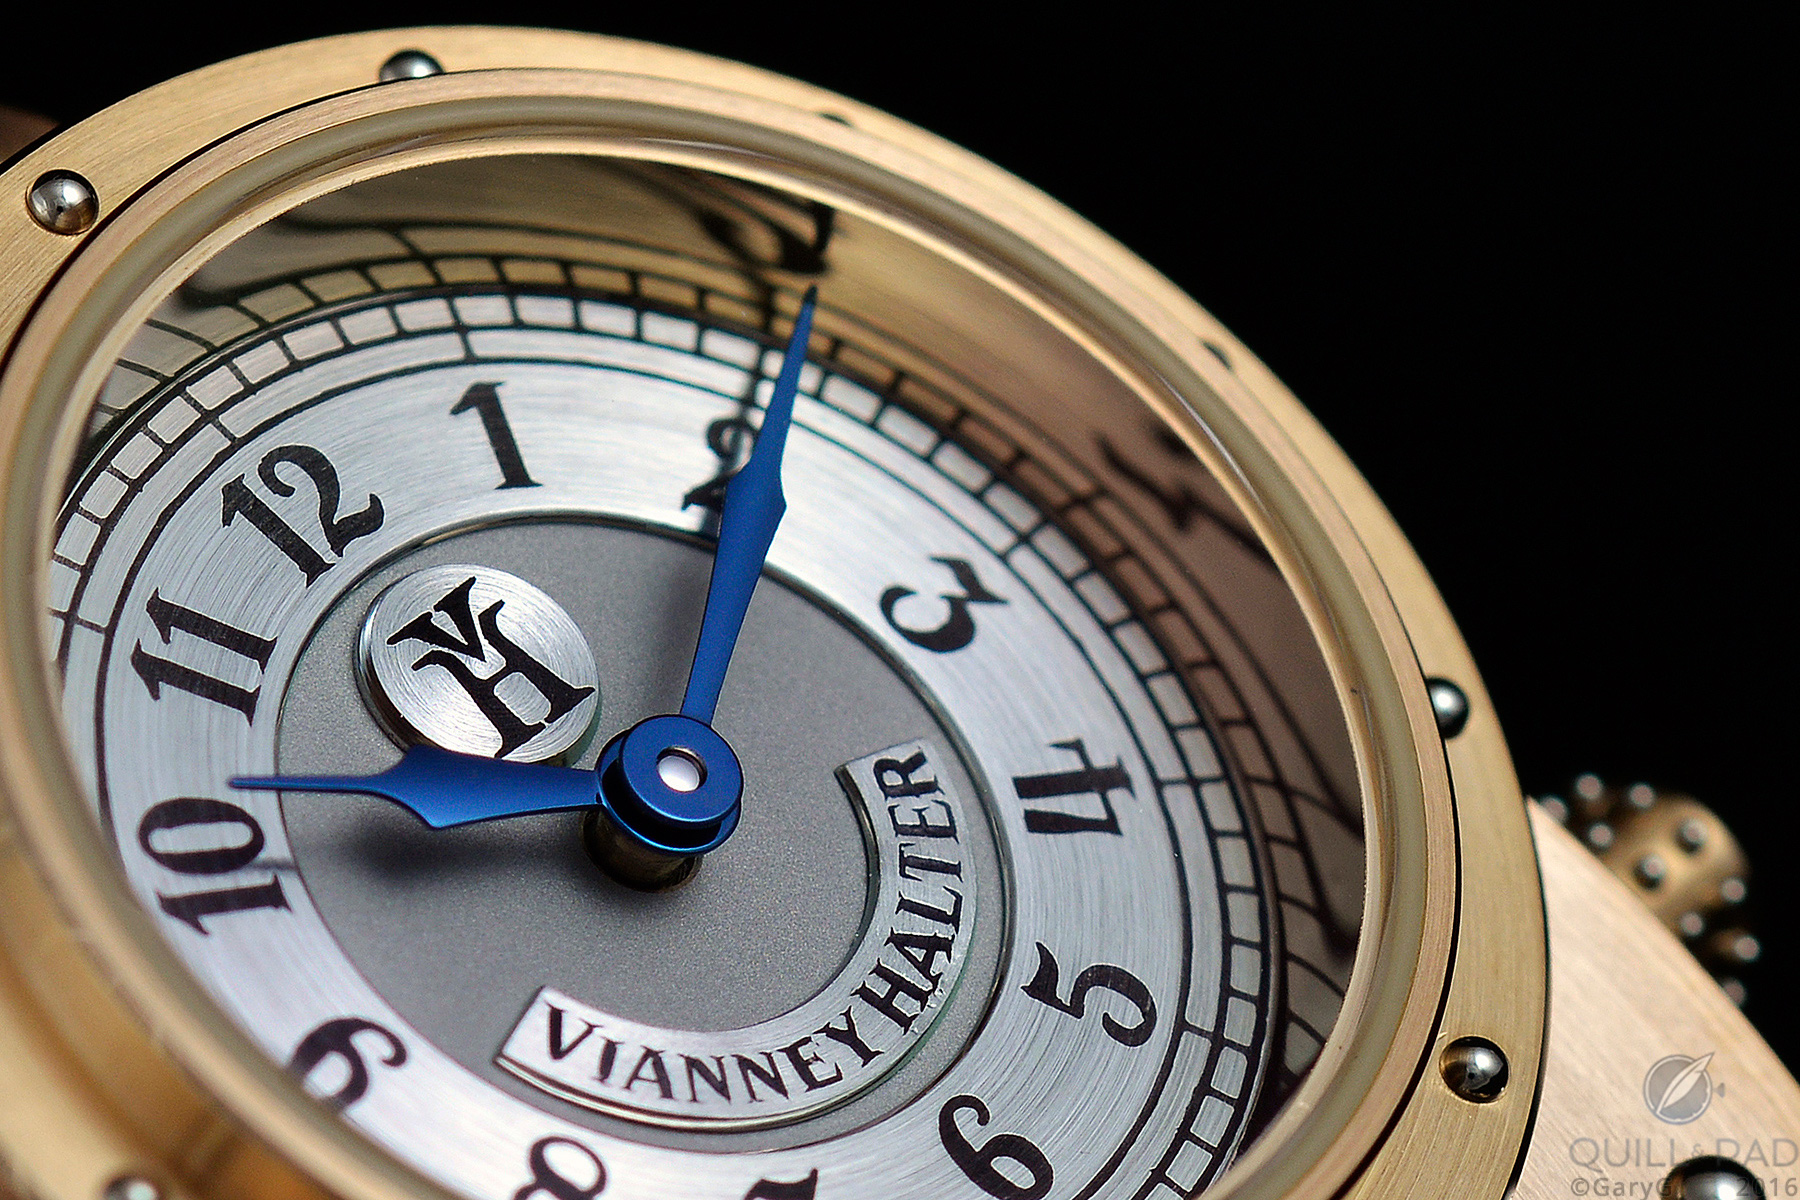 Dial detail, Vianney Halter Antiqua: highlighting the blued hands